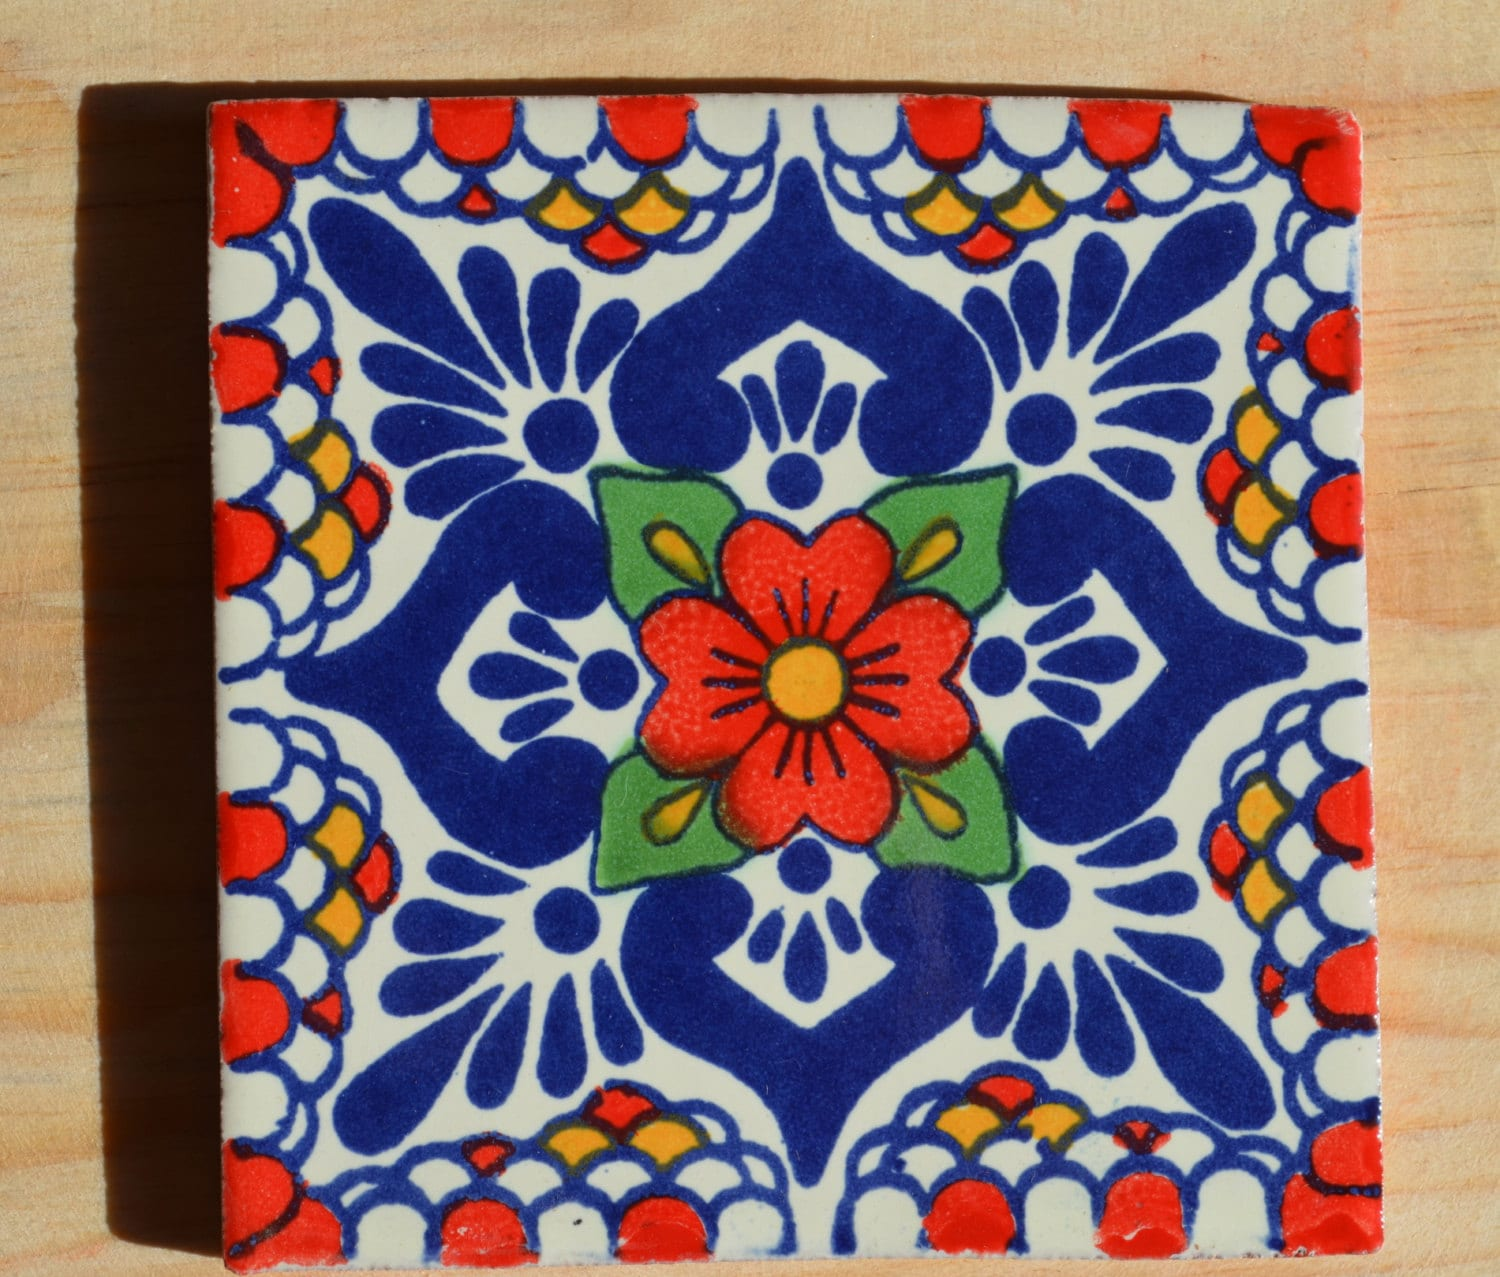 Mexican Tiles: 90 Mexican Tiles Hand Painted